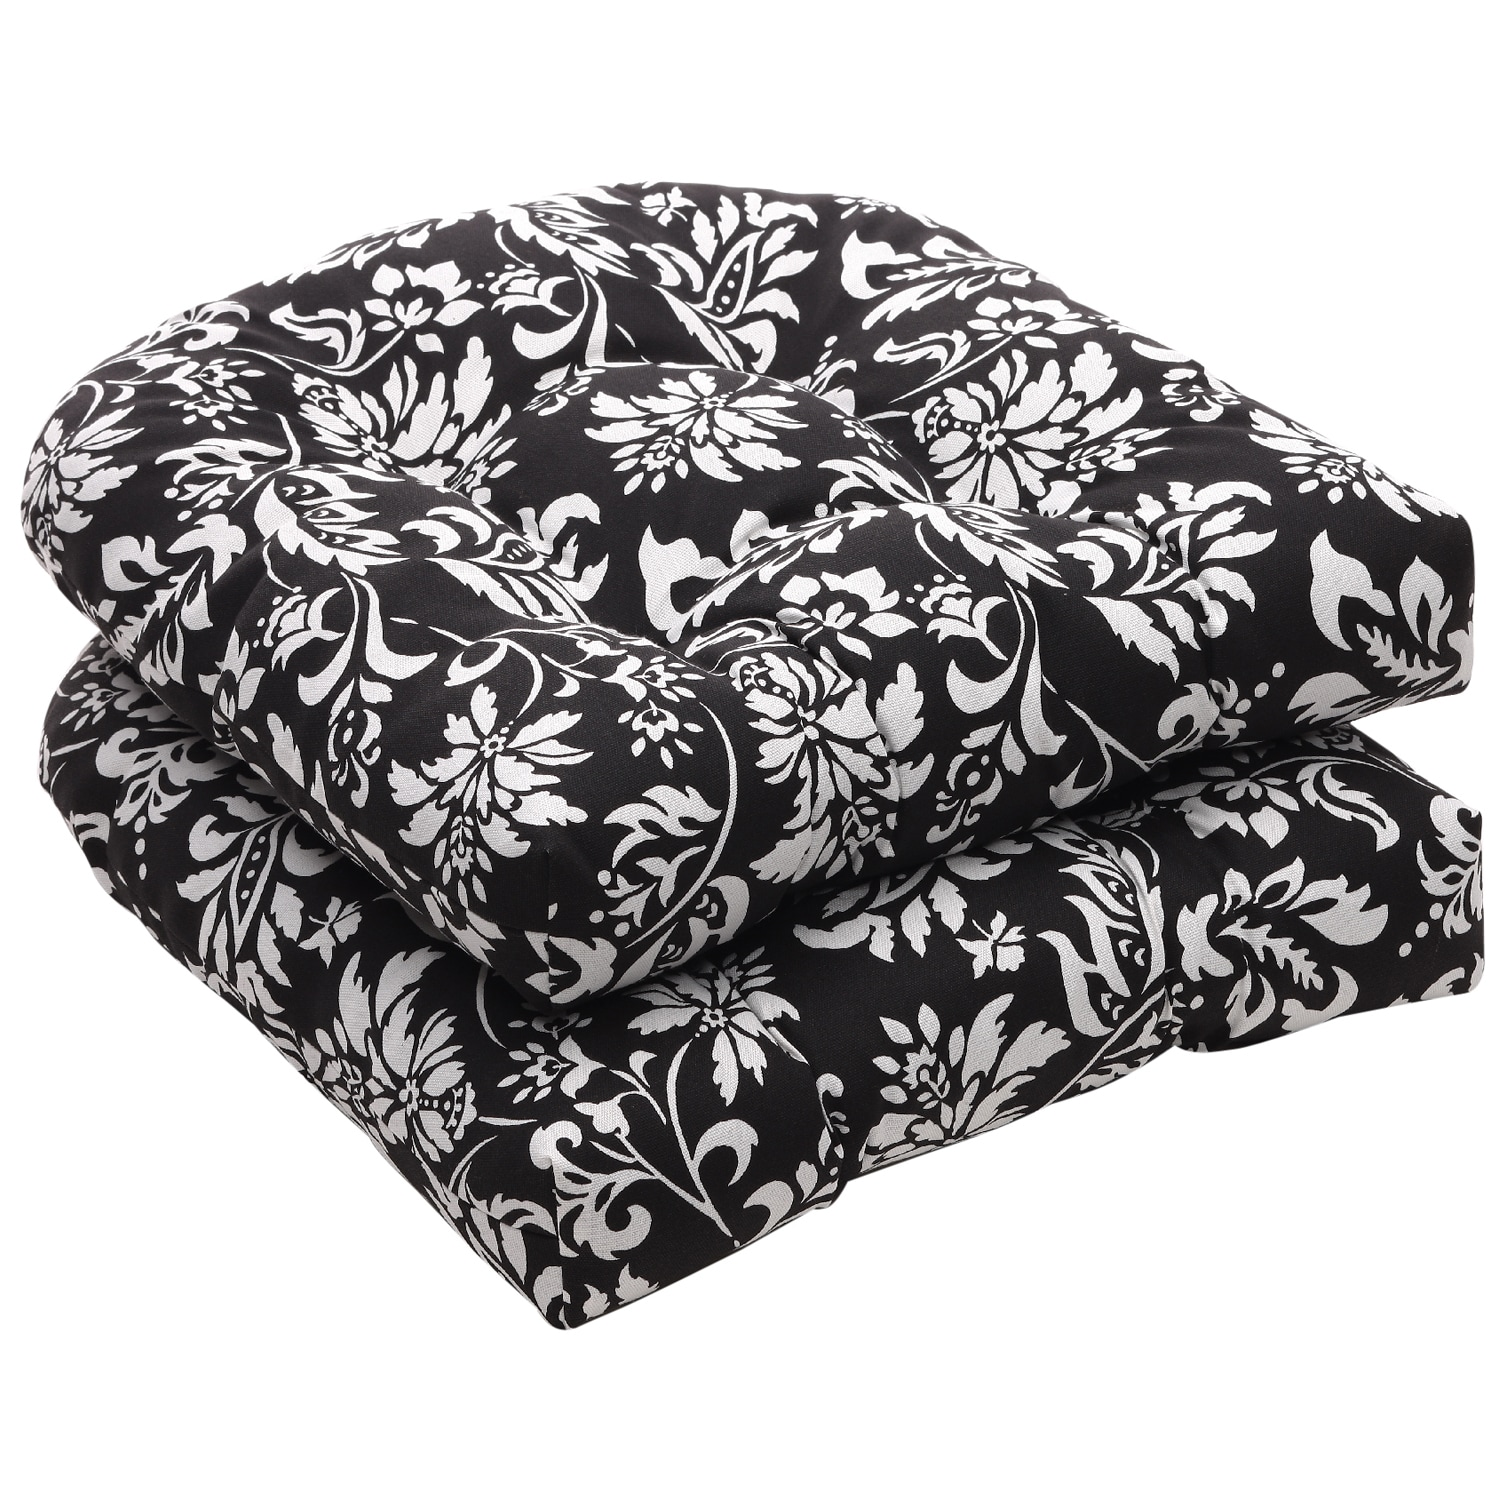 Pillow Perfect Outdoor Black White Floral Wicker Seat